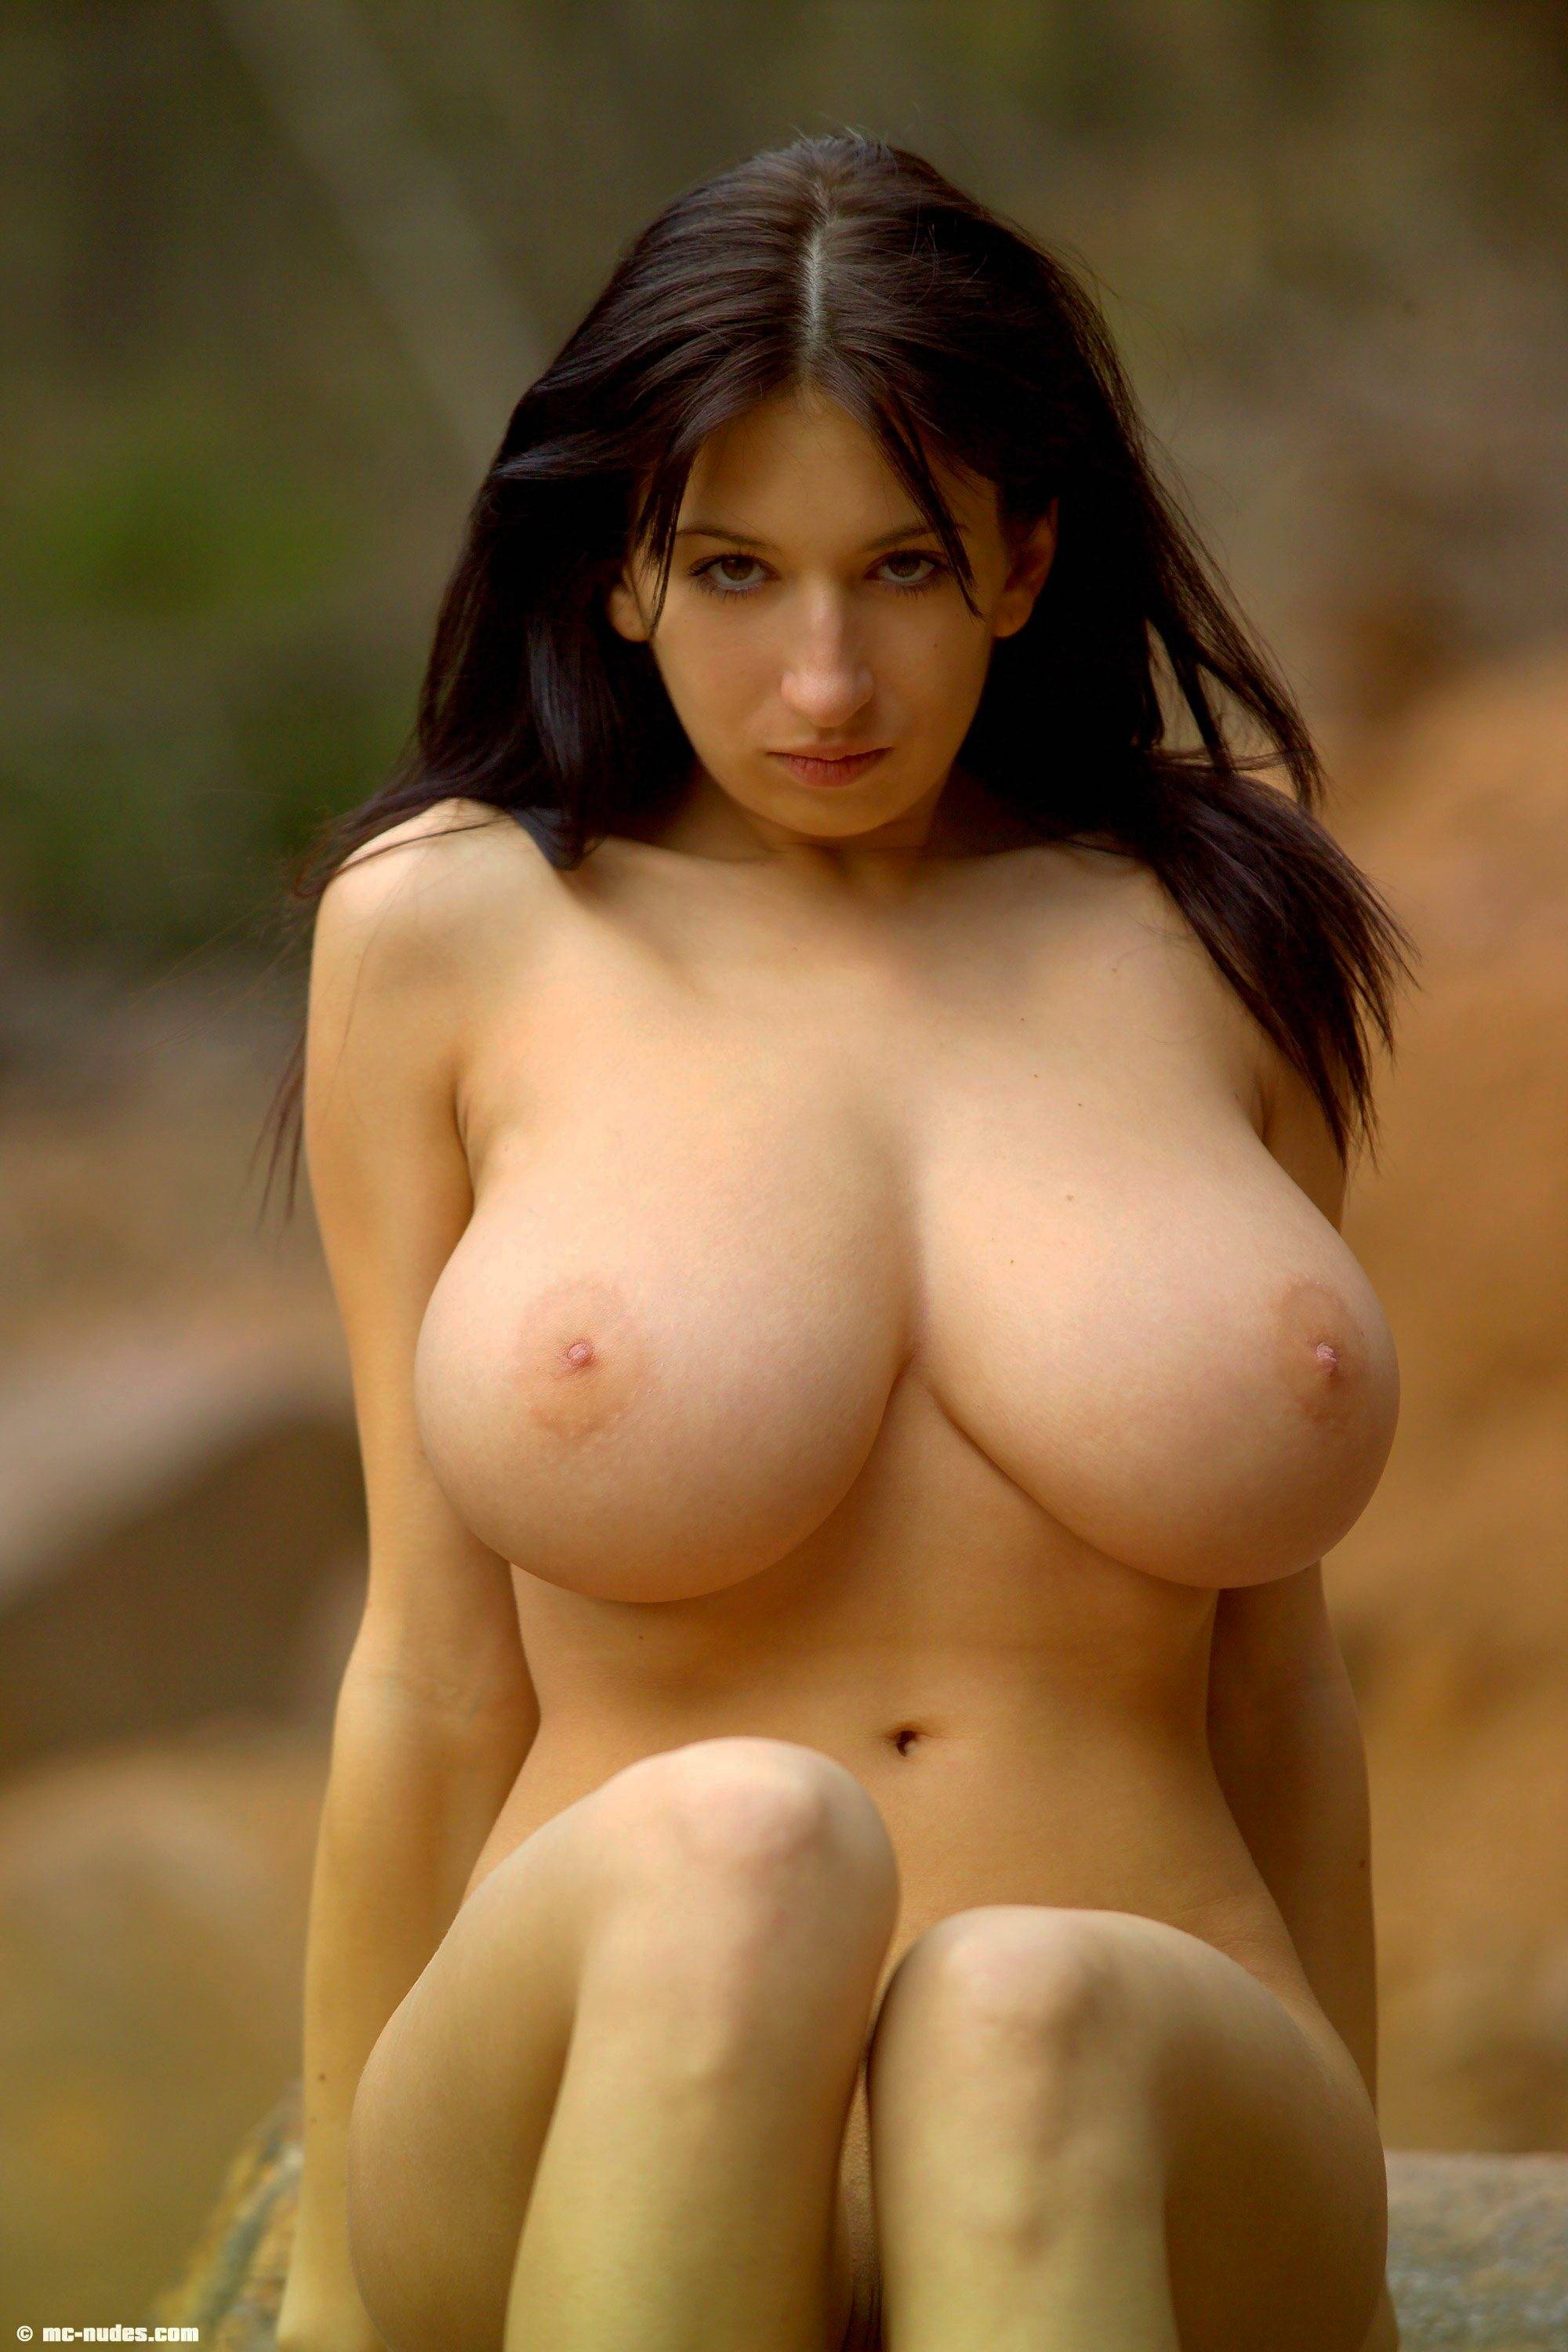 super hot naked girls with big boobies